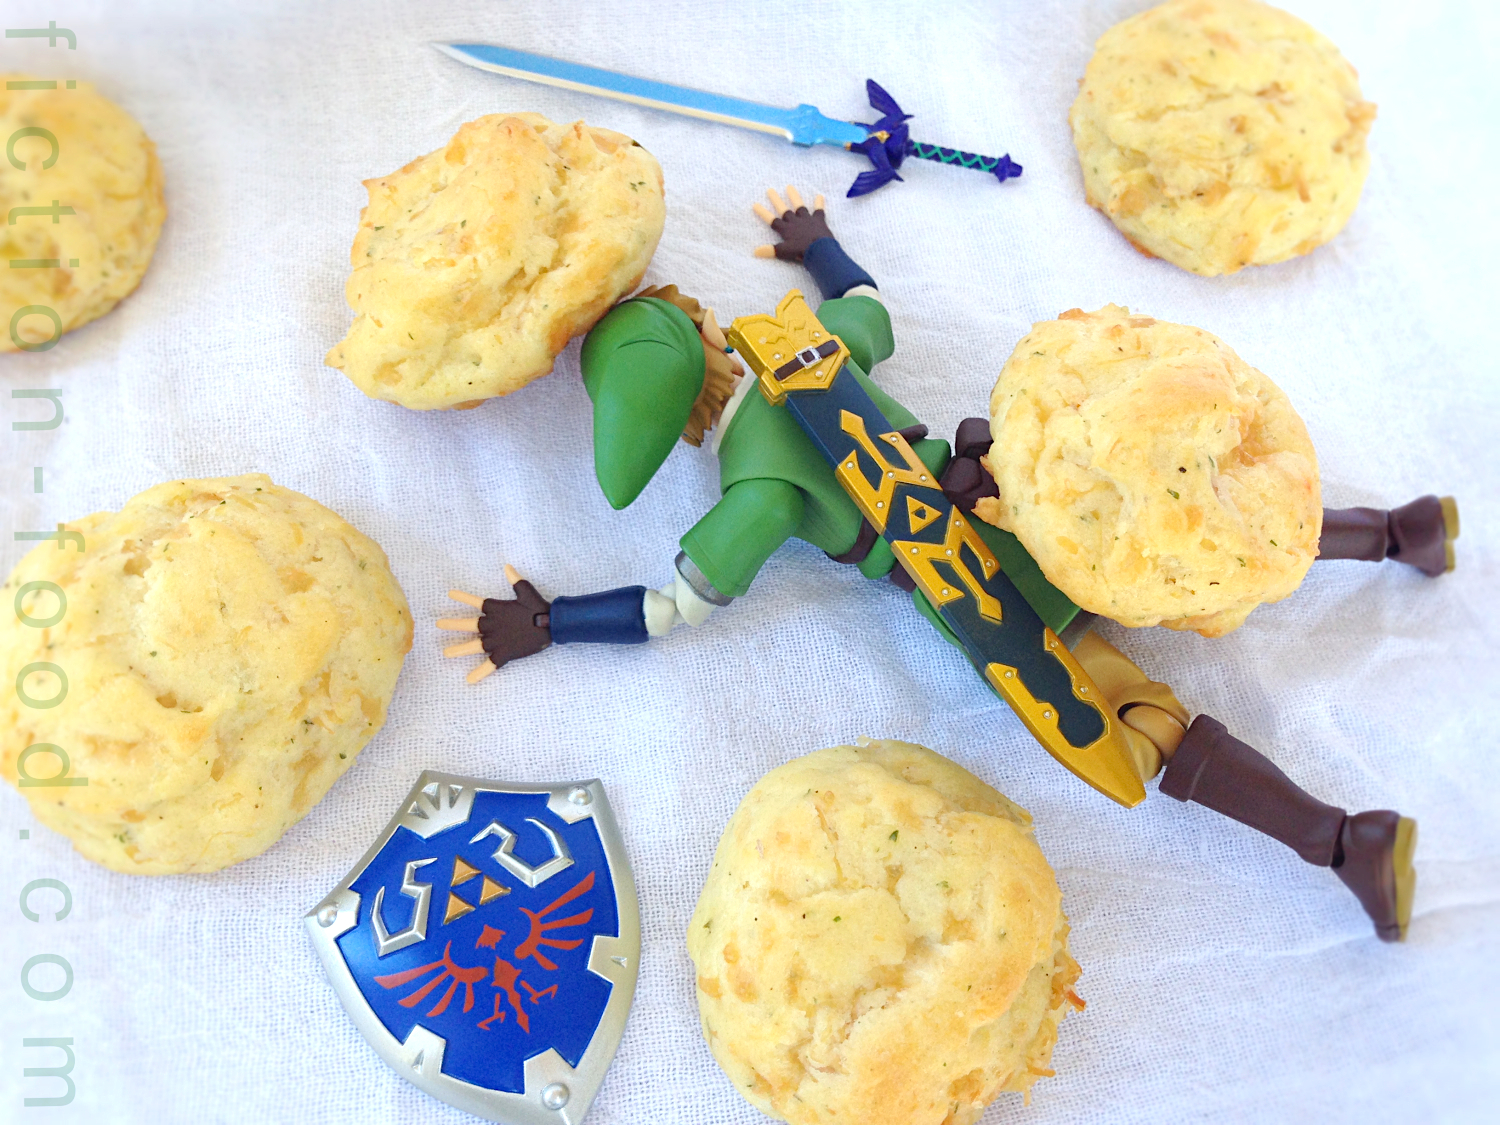 Fiction food caf cucco puffs for the legend of zelda games for Cuisine zelda